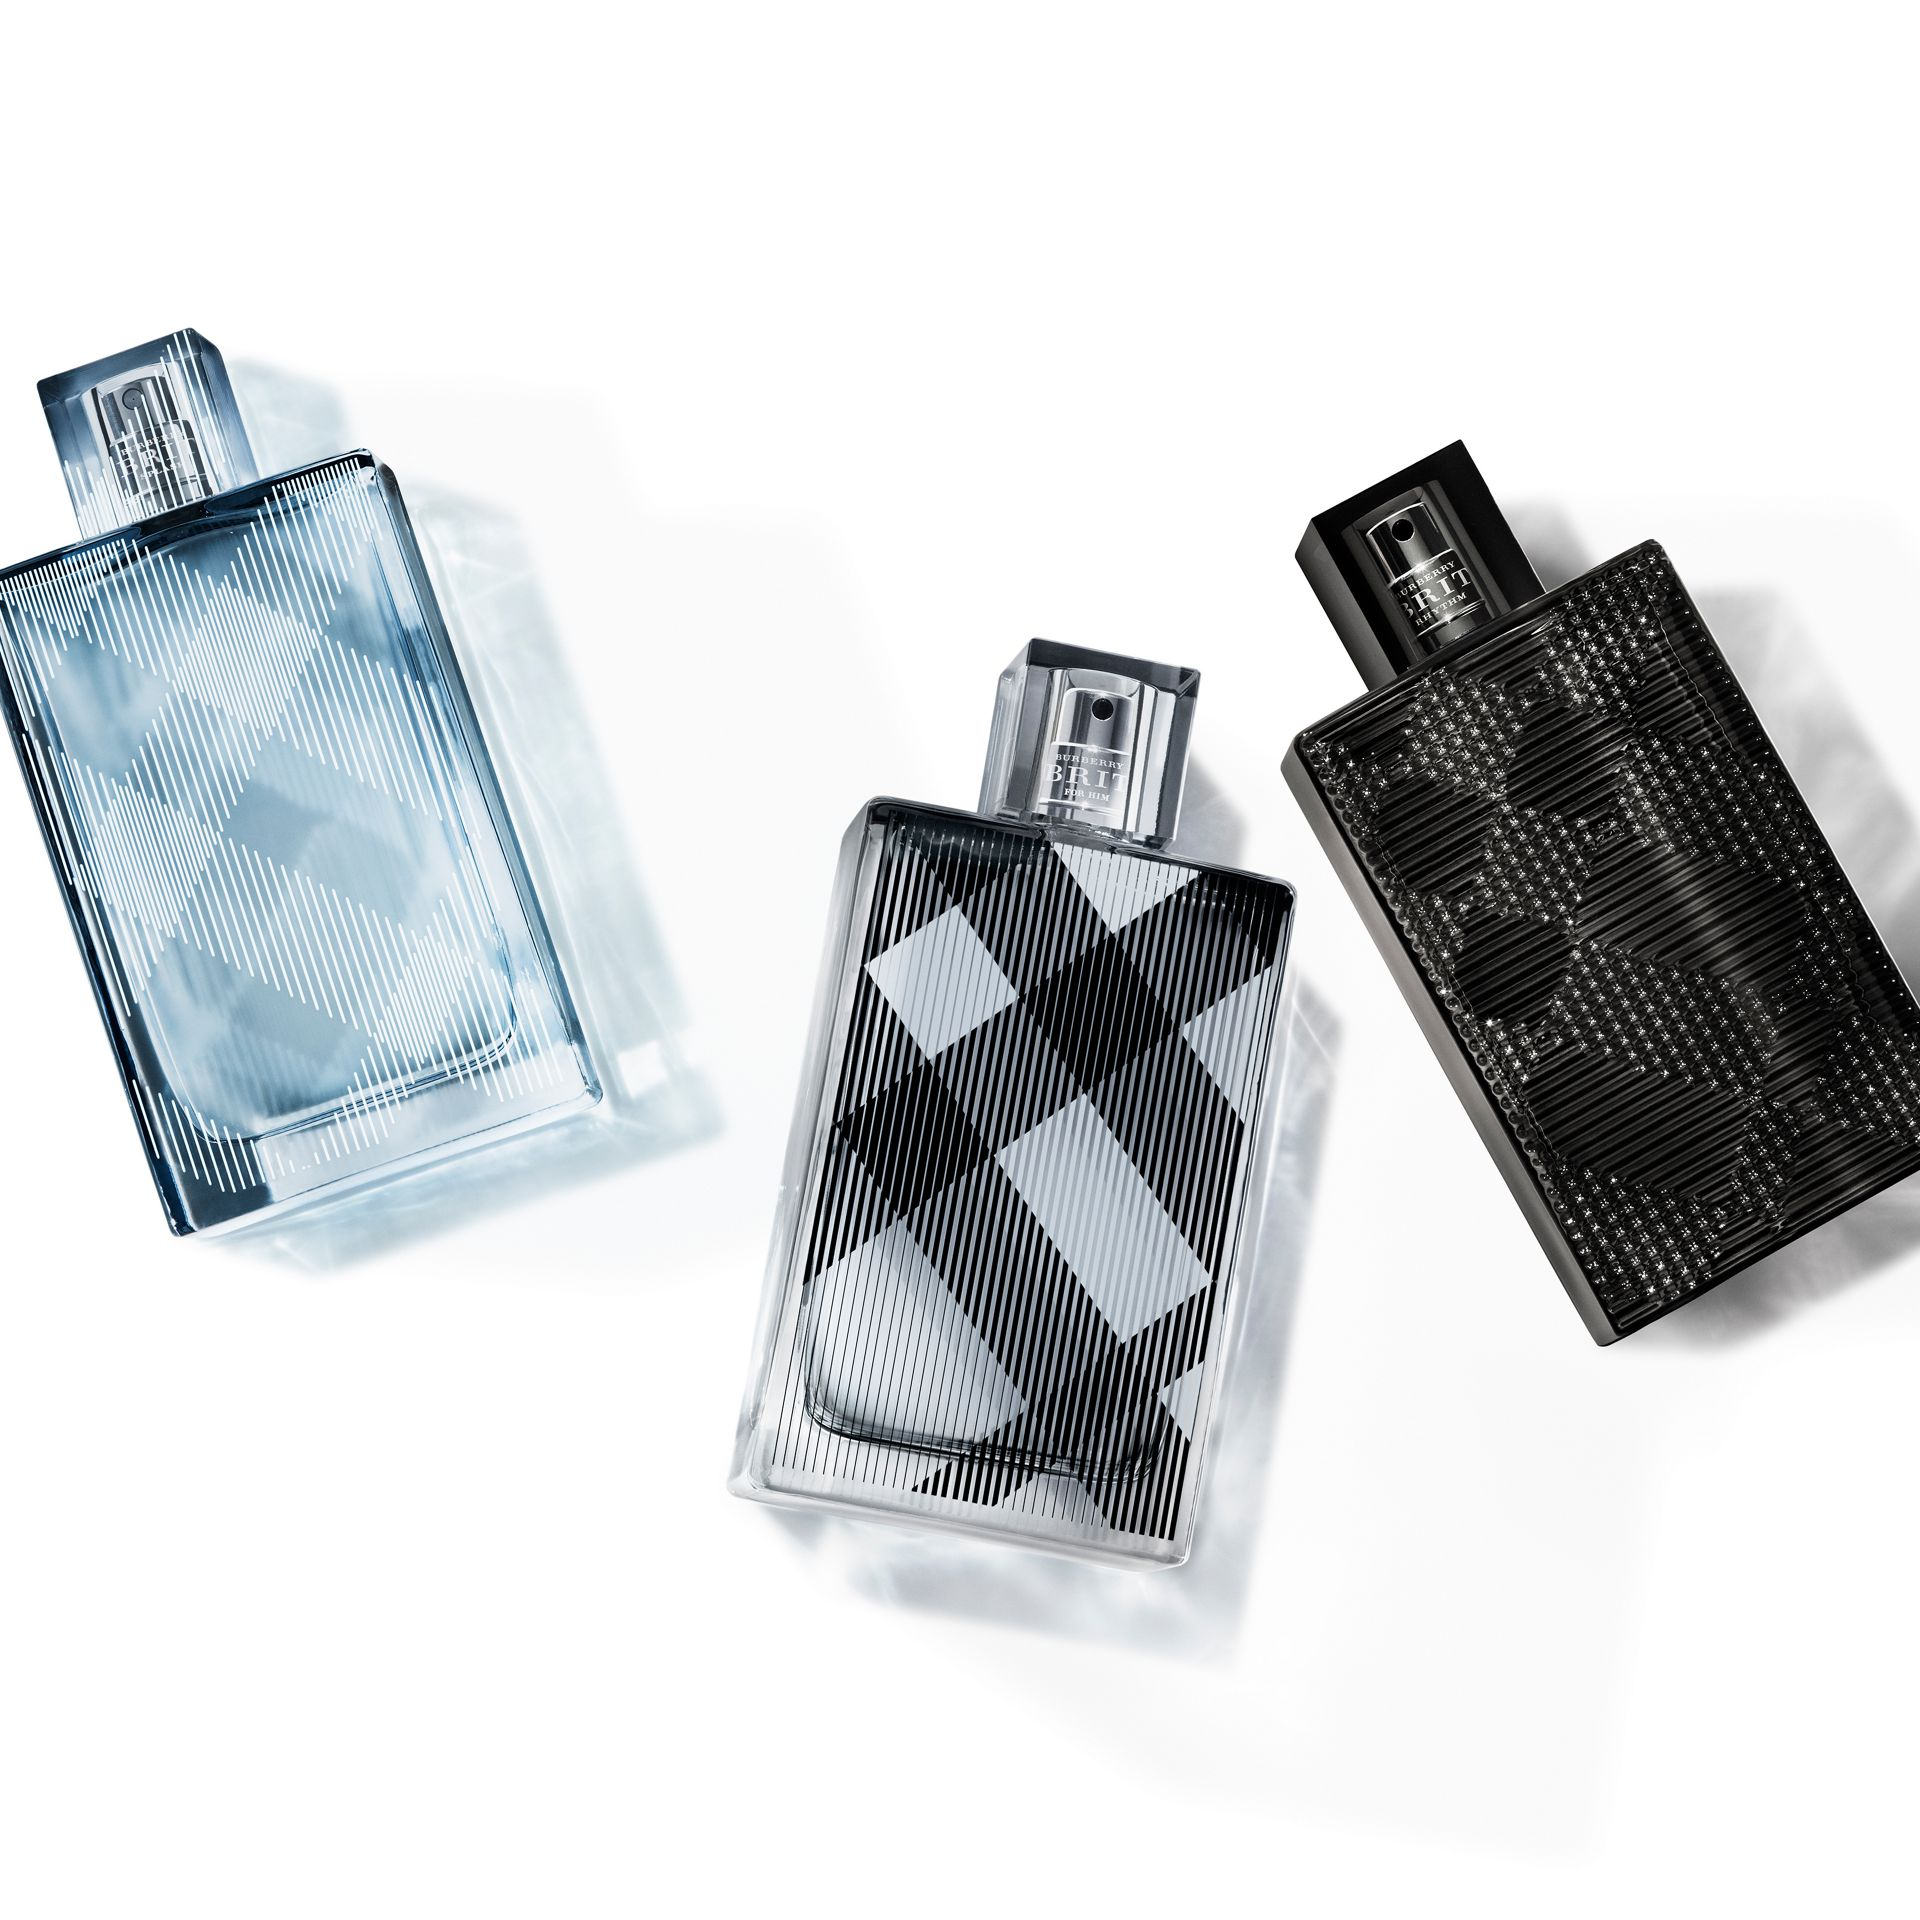 Burberry Brit for Him Eau de Toilette Set - gallery image 2